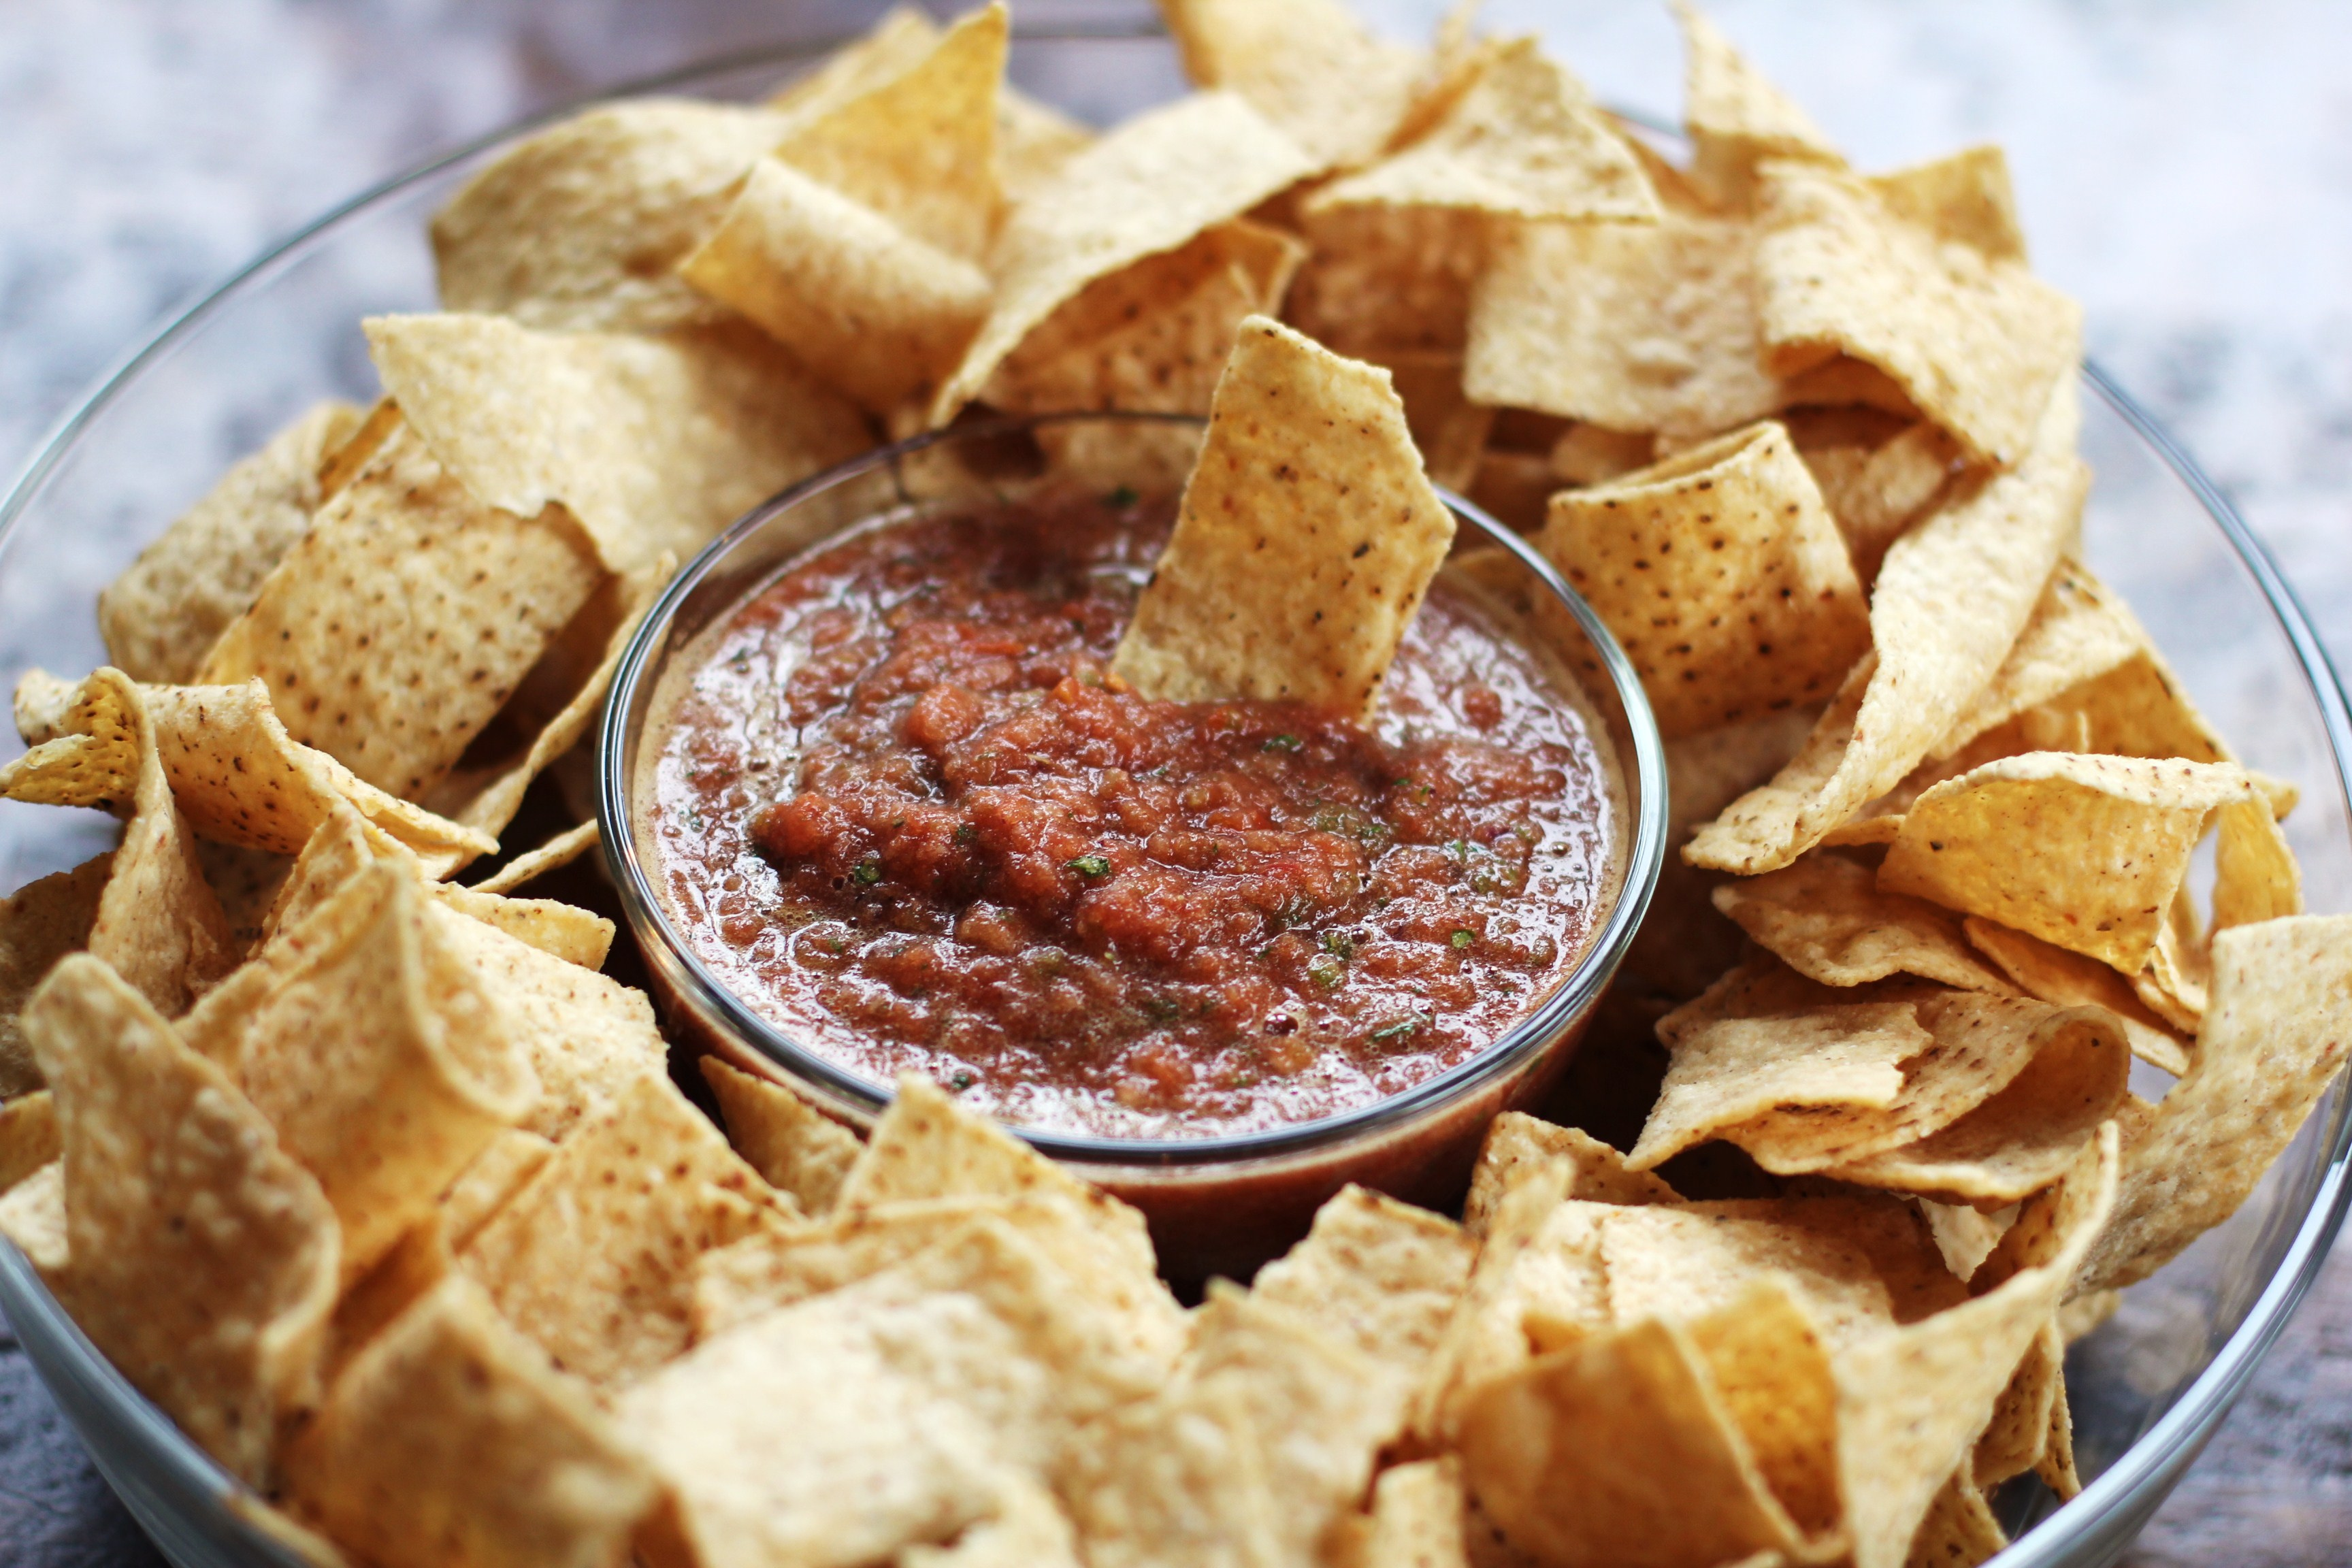 How to make homemade salsa from canned tomatoes